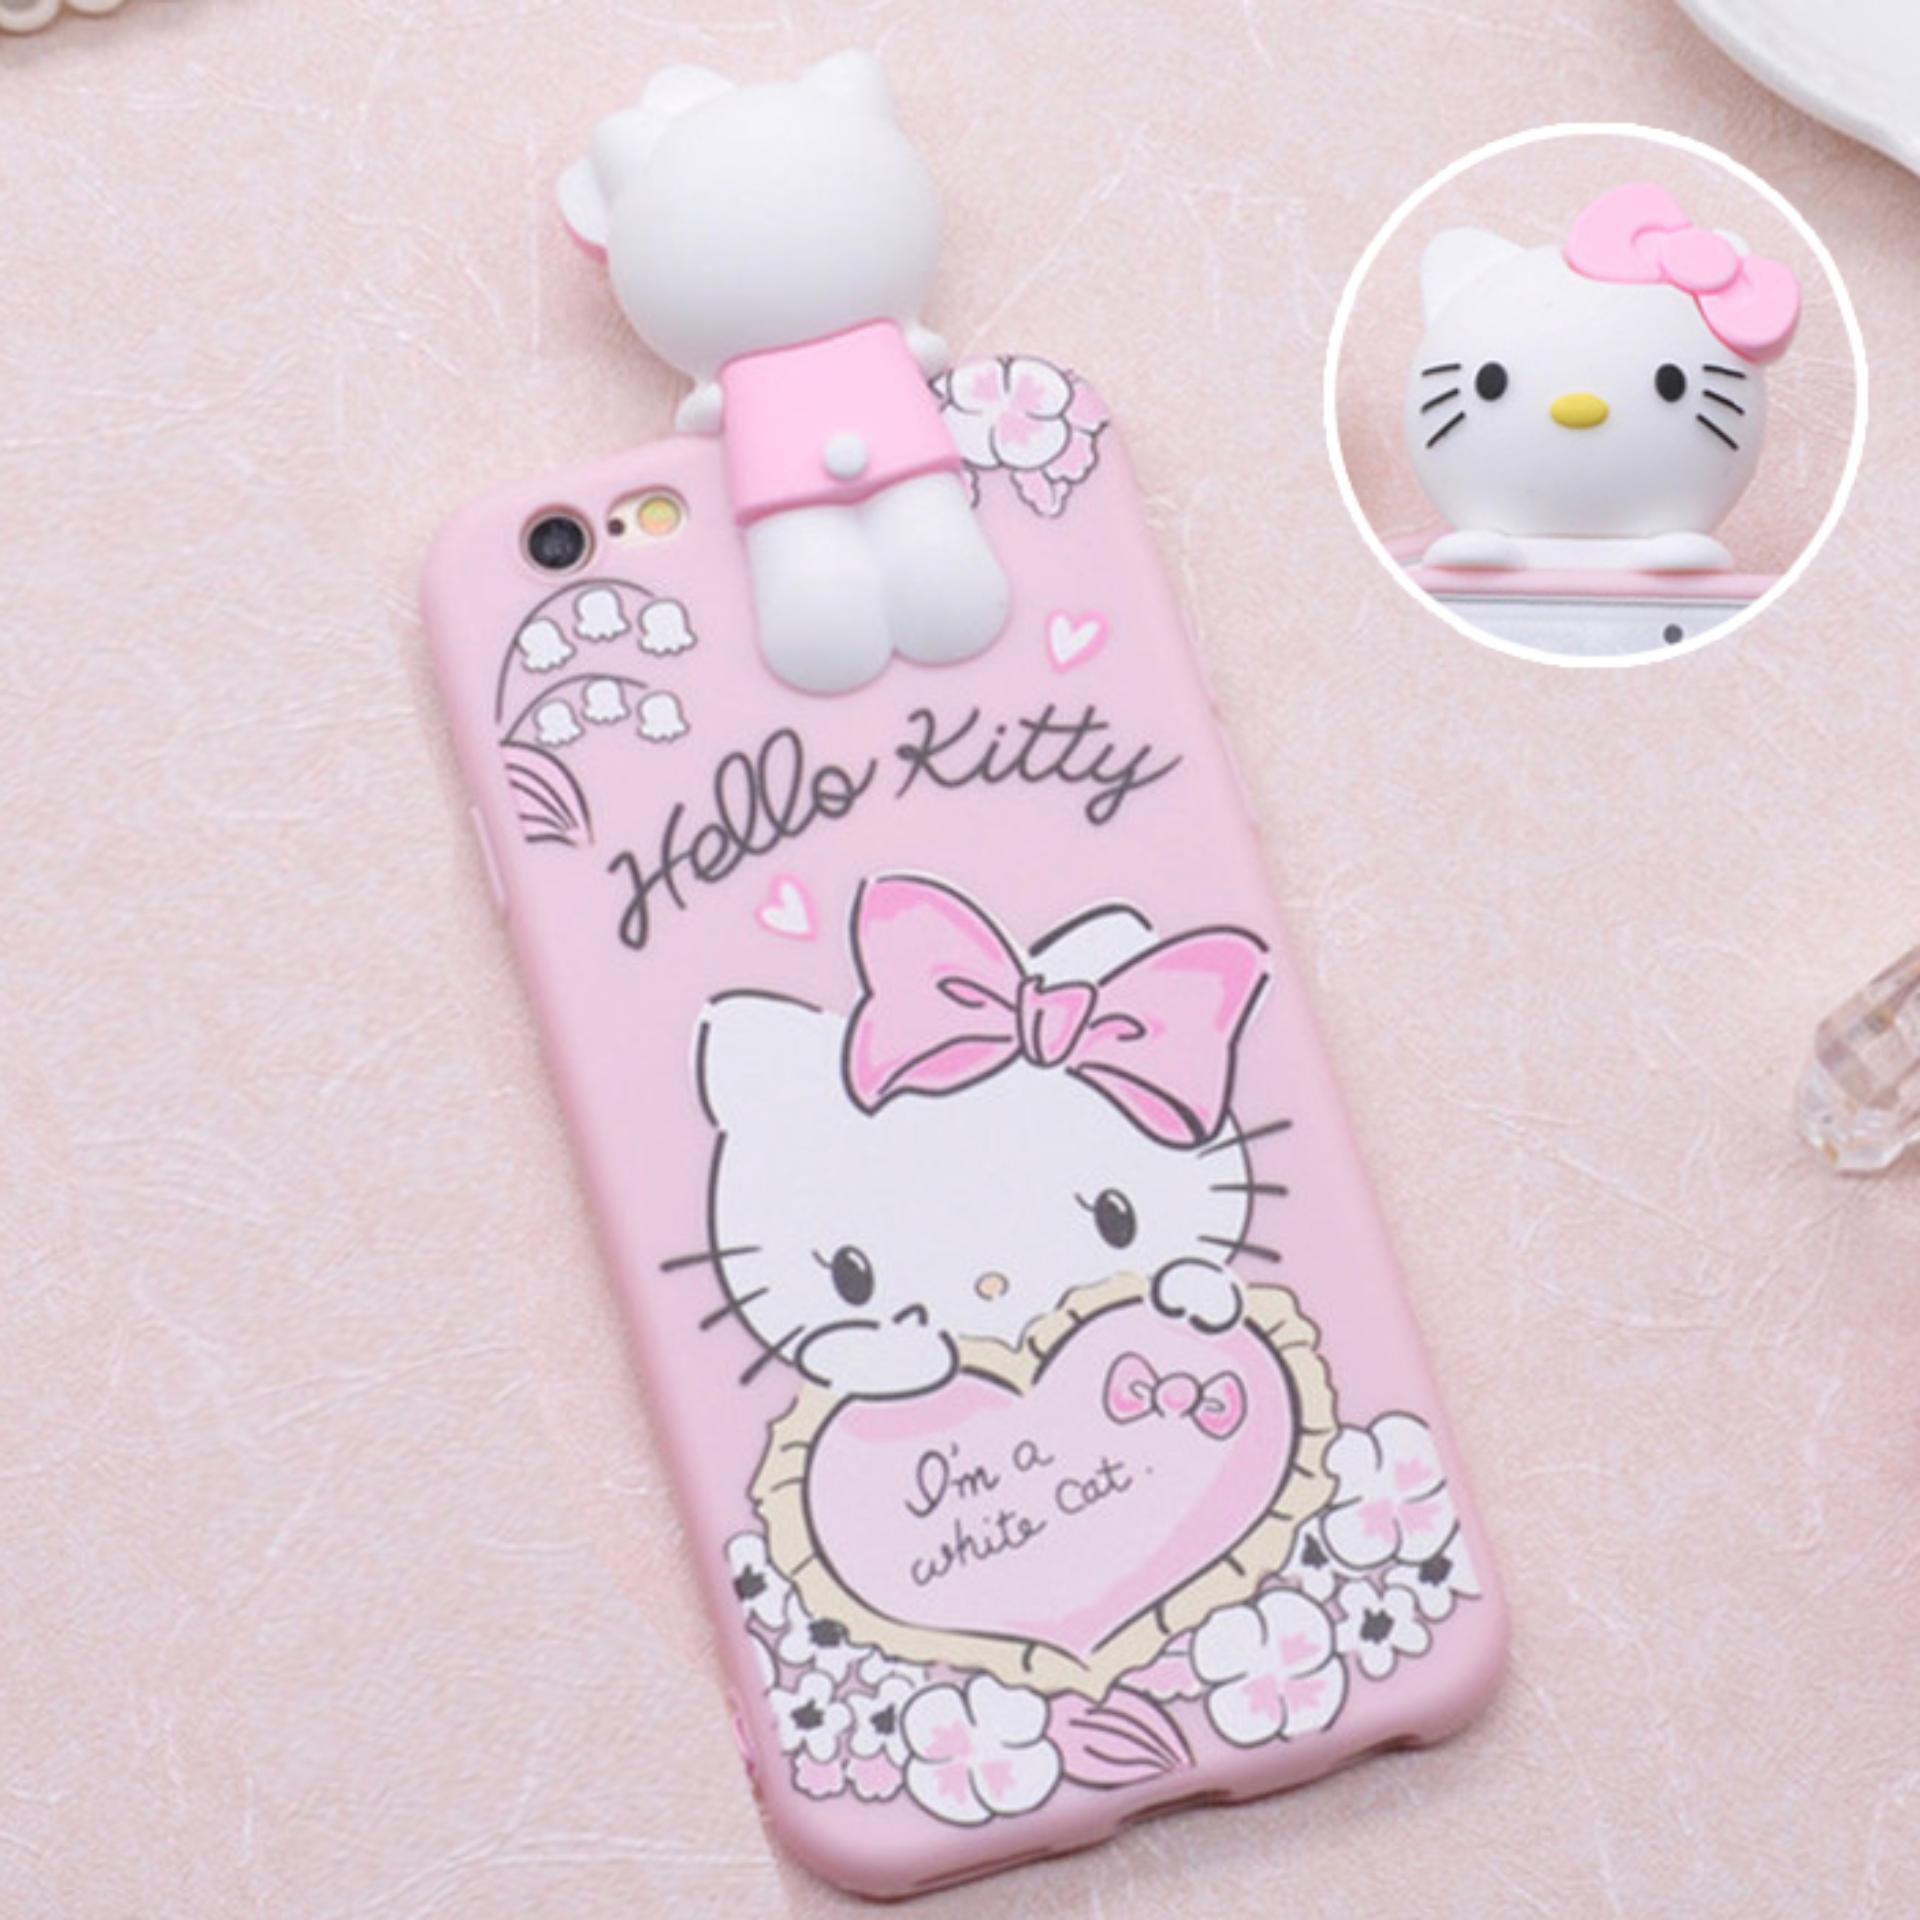 Review Terbaik Case Hello Kitty Iphone 6 Iphone 6S Casing Boneka Karakter Hello Kitty Iphone 6 Iphone 6S